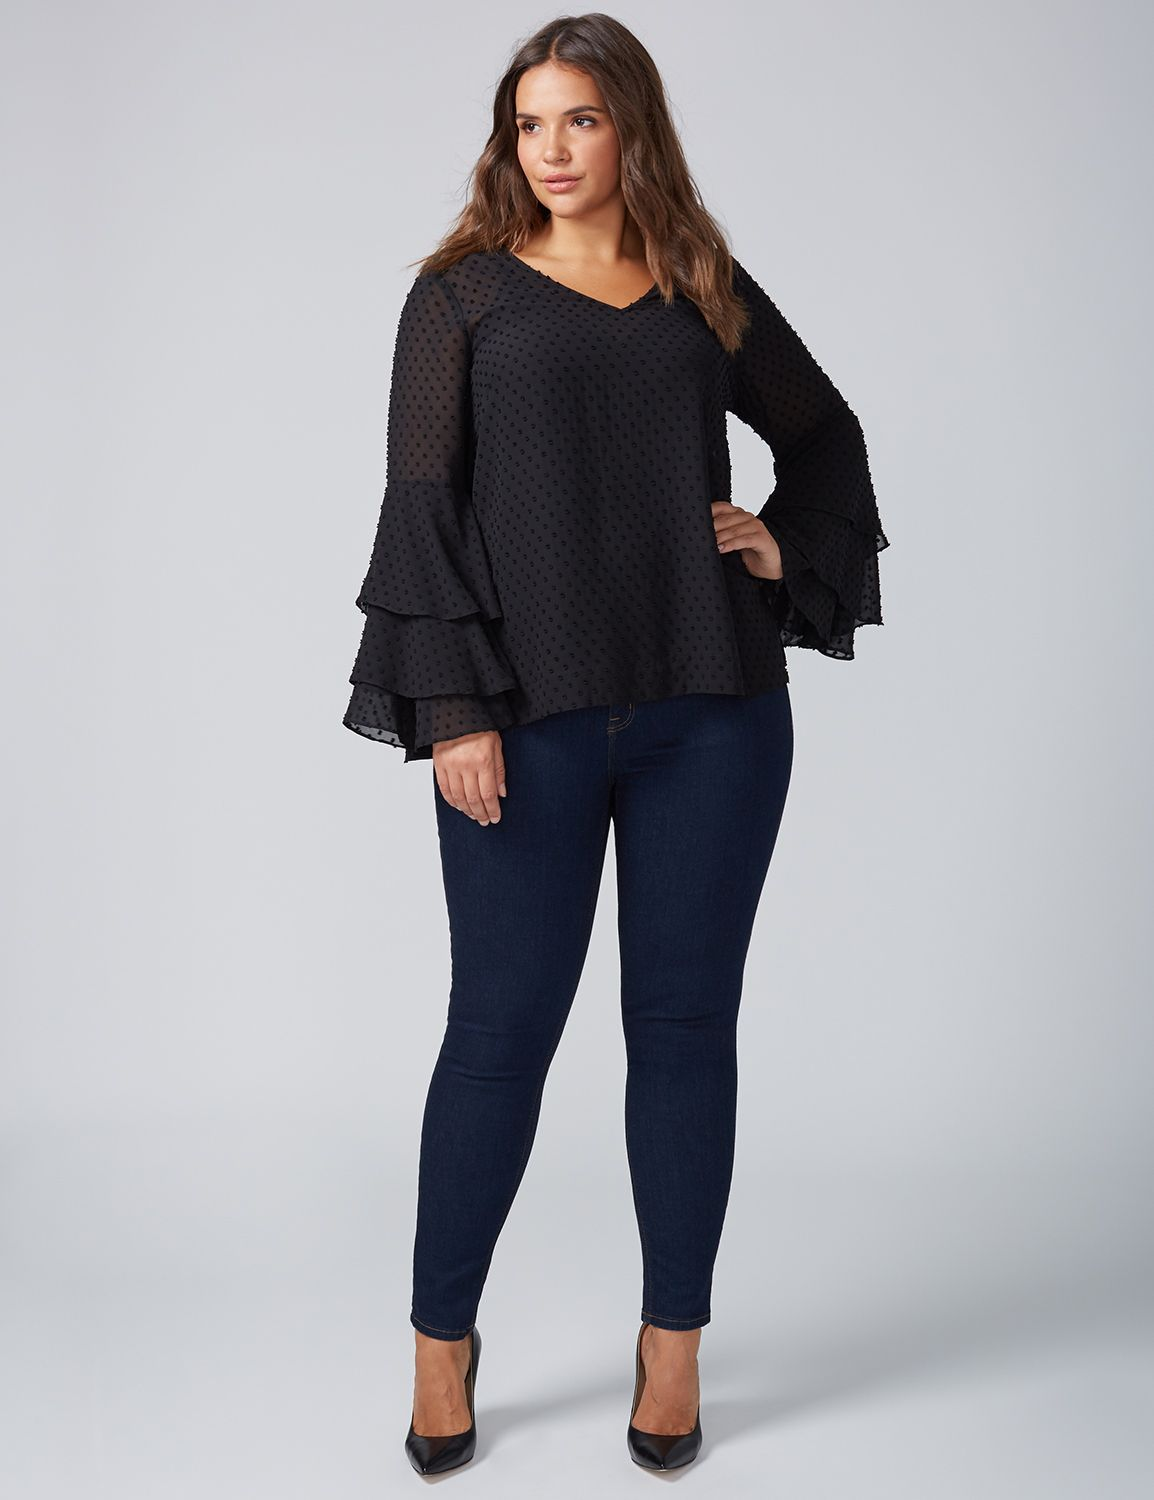 Lane Bryant Women S Tiered Bell Sleeve Top 26 28 Black